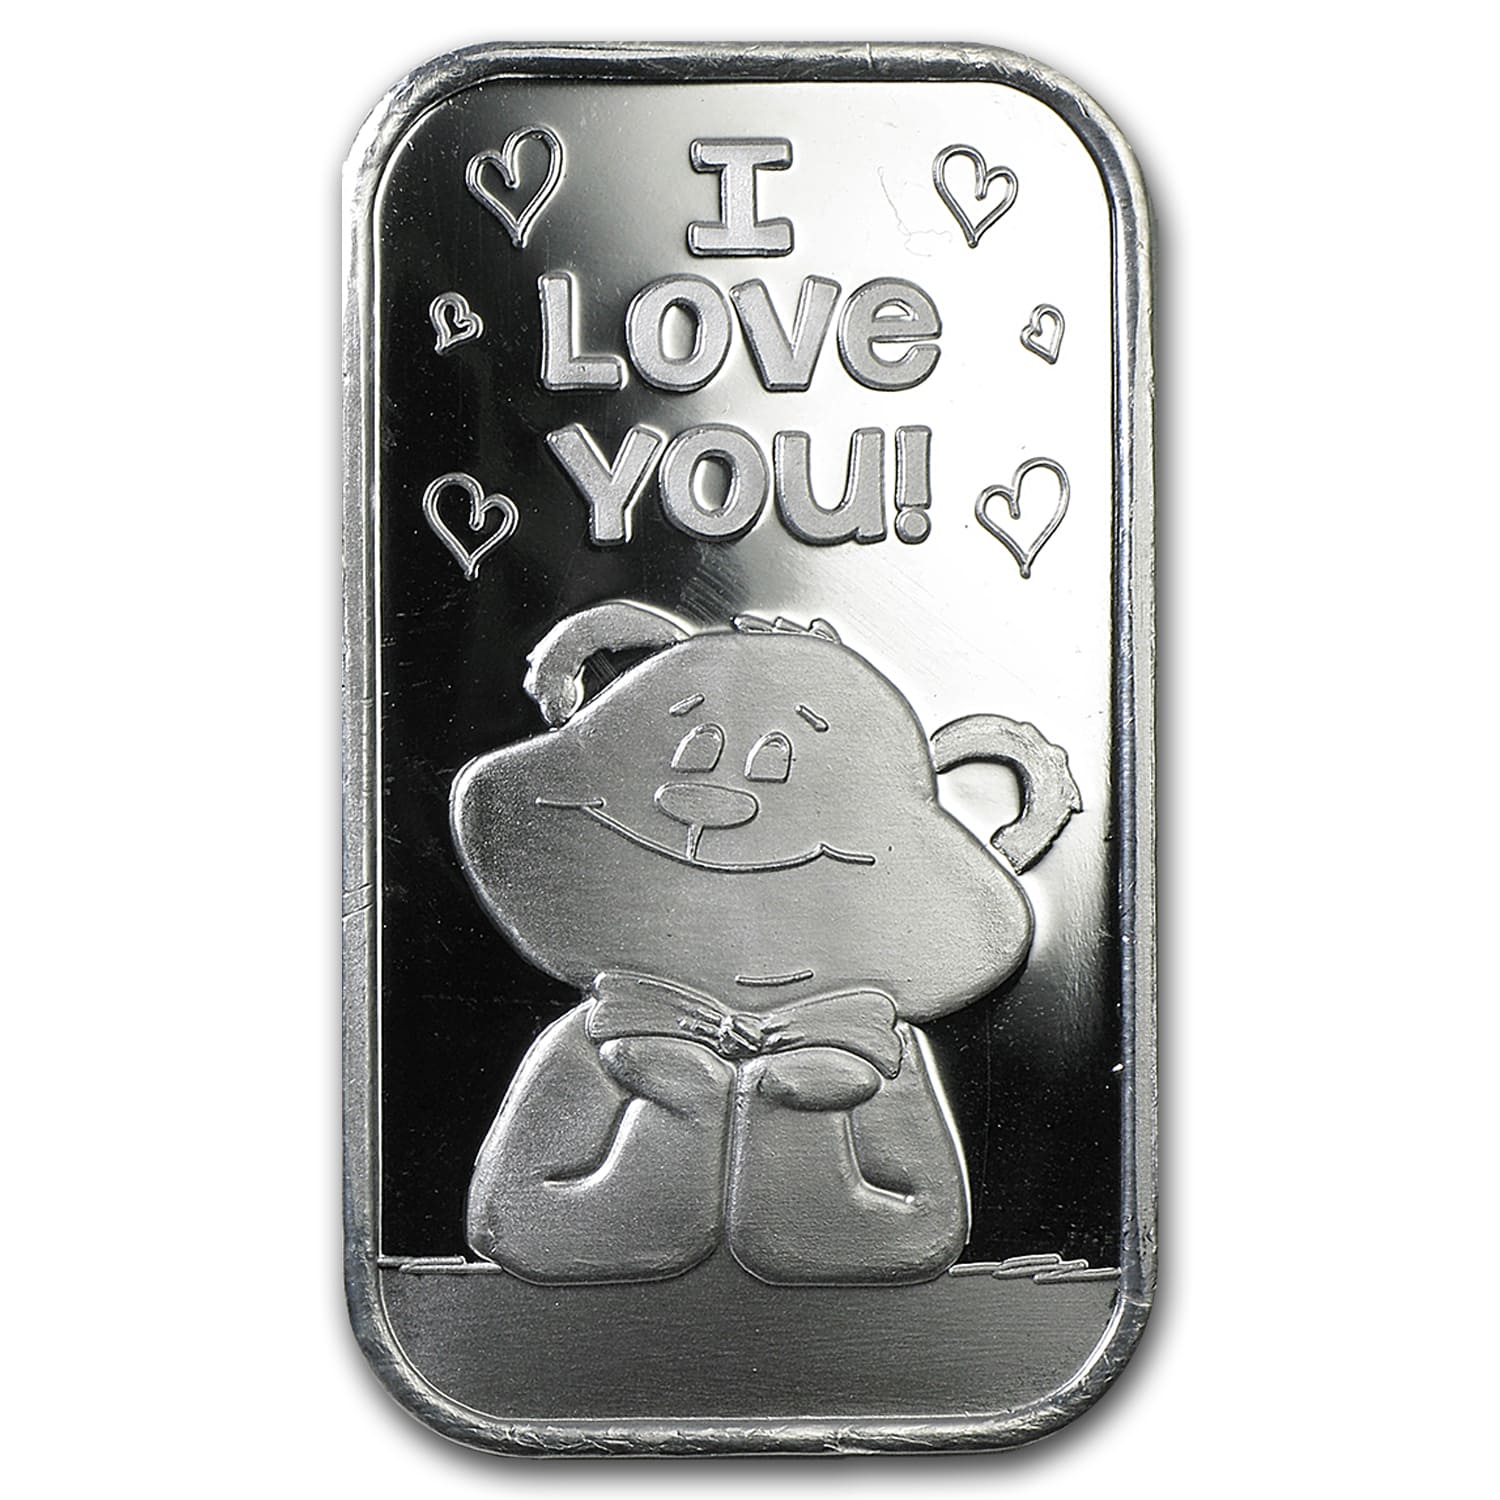 1 oz Silver Bar - I Love You Bear